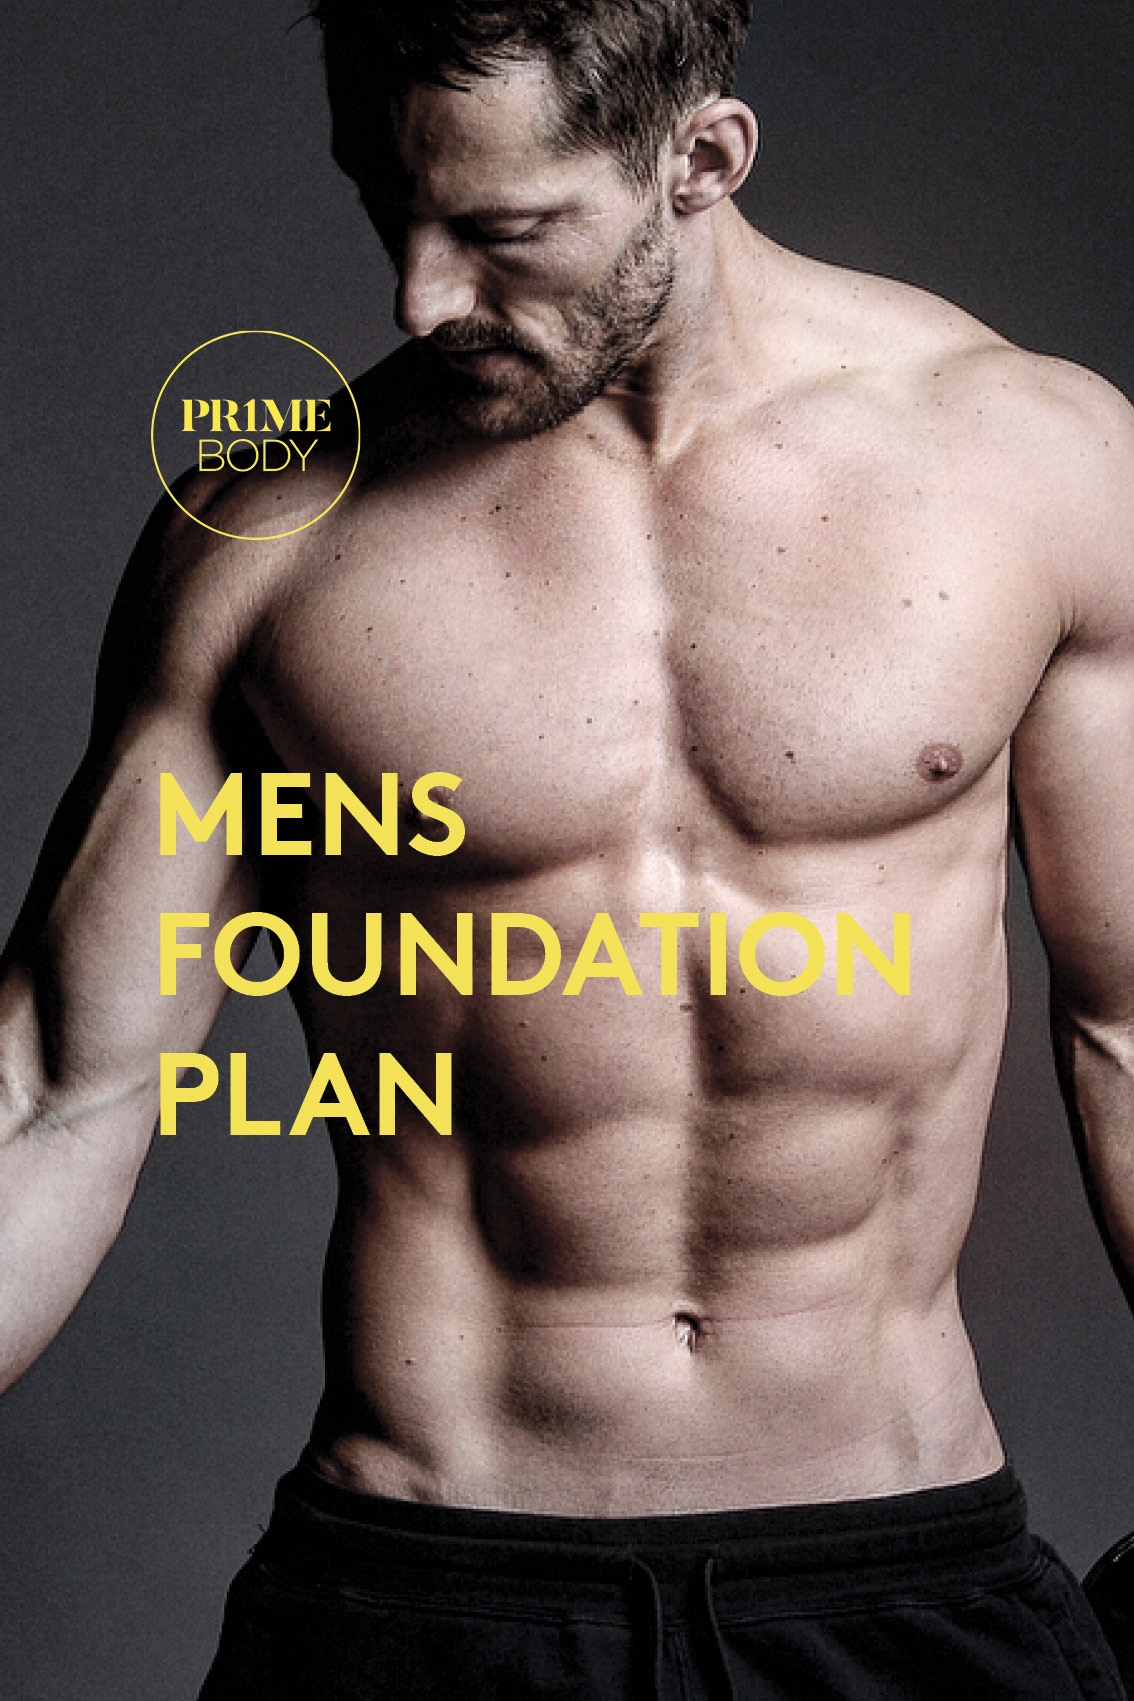 MEN'S 12 WEEK FOUNDATION PLAN